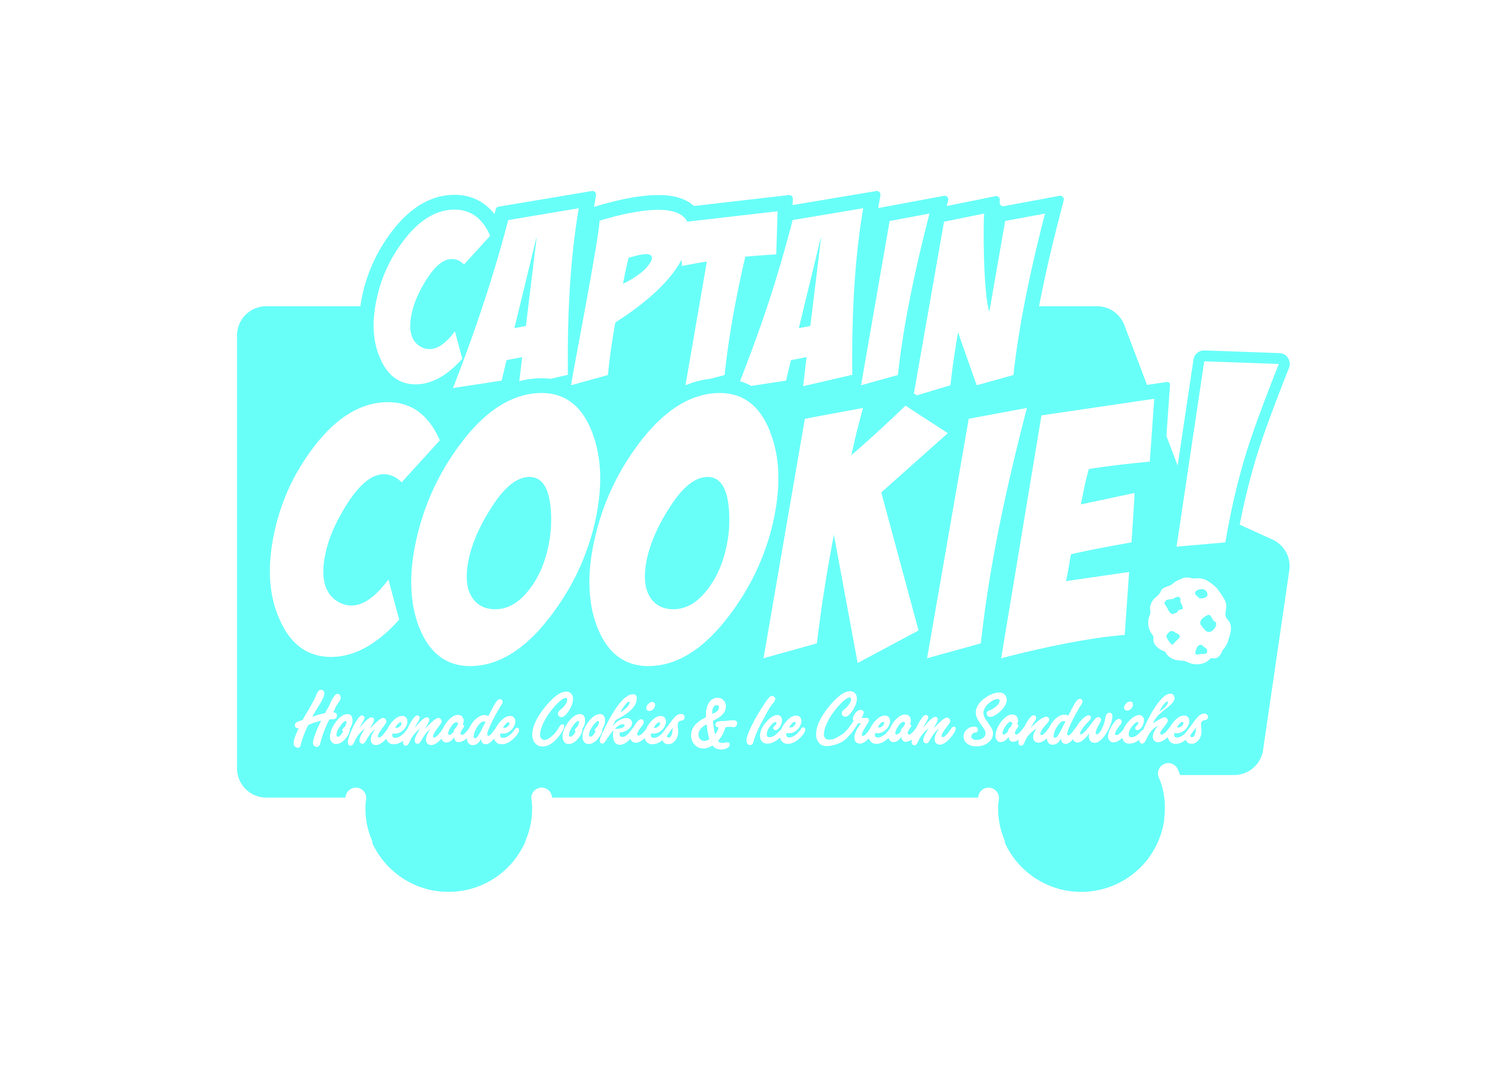 Captain Cookie